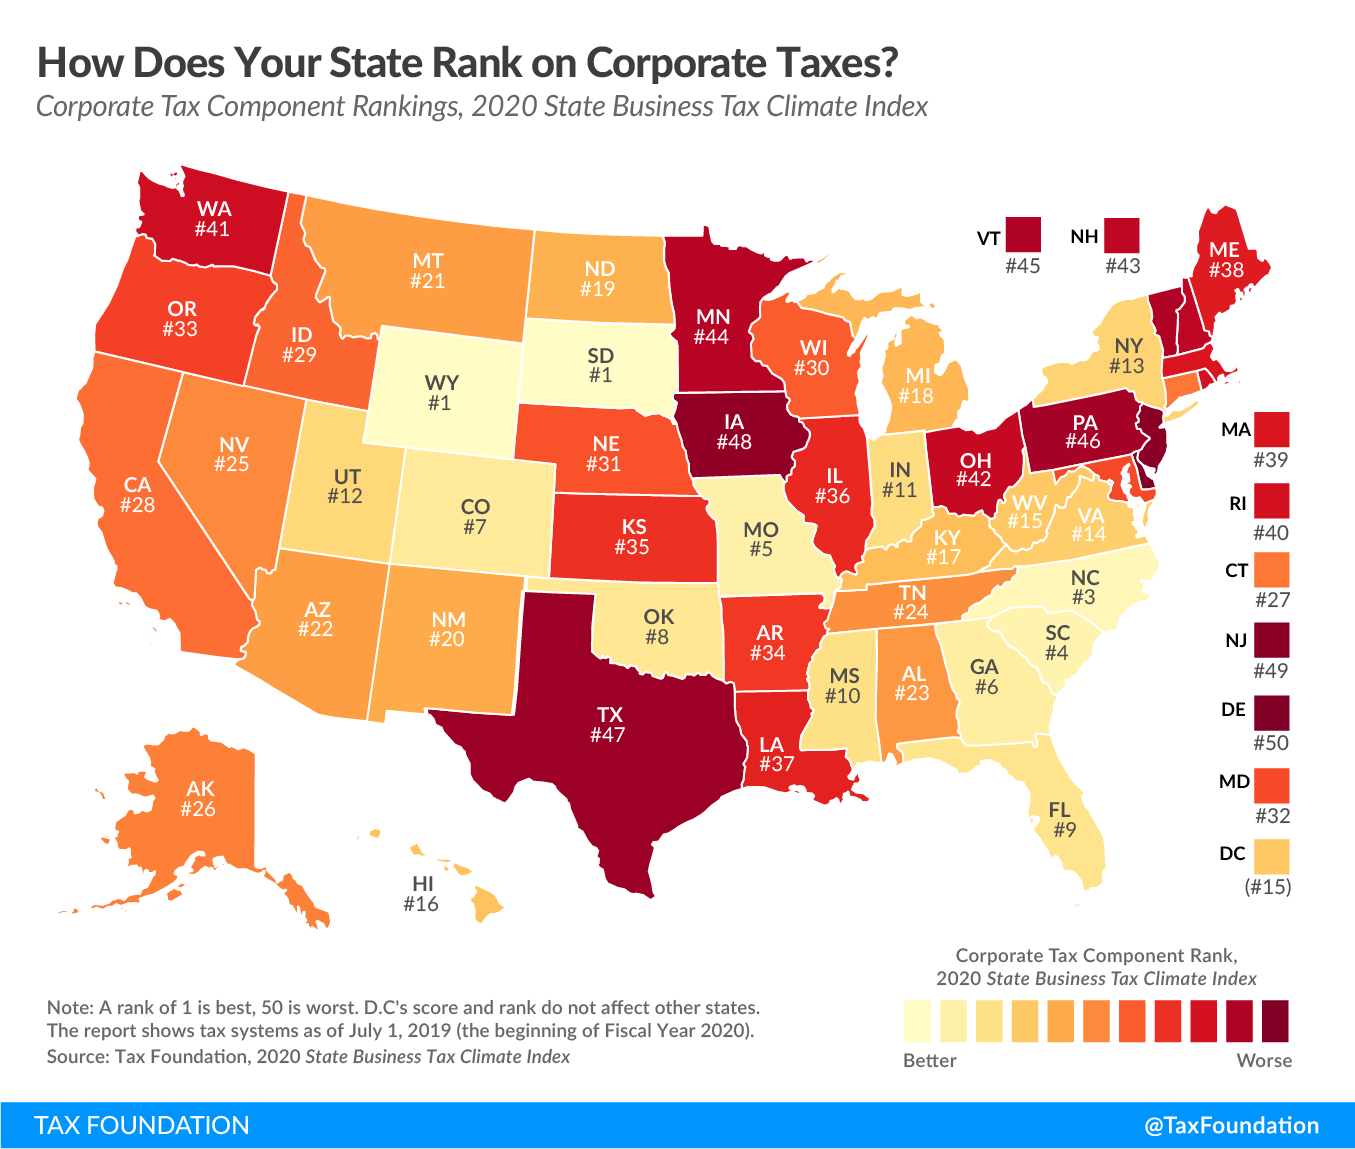 worst corporate tax codes in the U.S. worst corporate tax codes in the country. worst state corporate tax codes in the country, best corporate tax codes in the country, best state corporate tax systems in the country, worst state business tax codes, best state business tax codes, best business tax codes, worst business tax codes